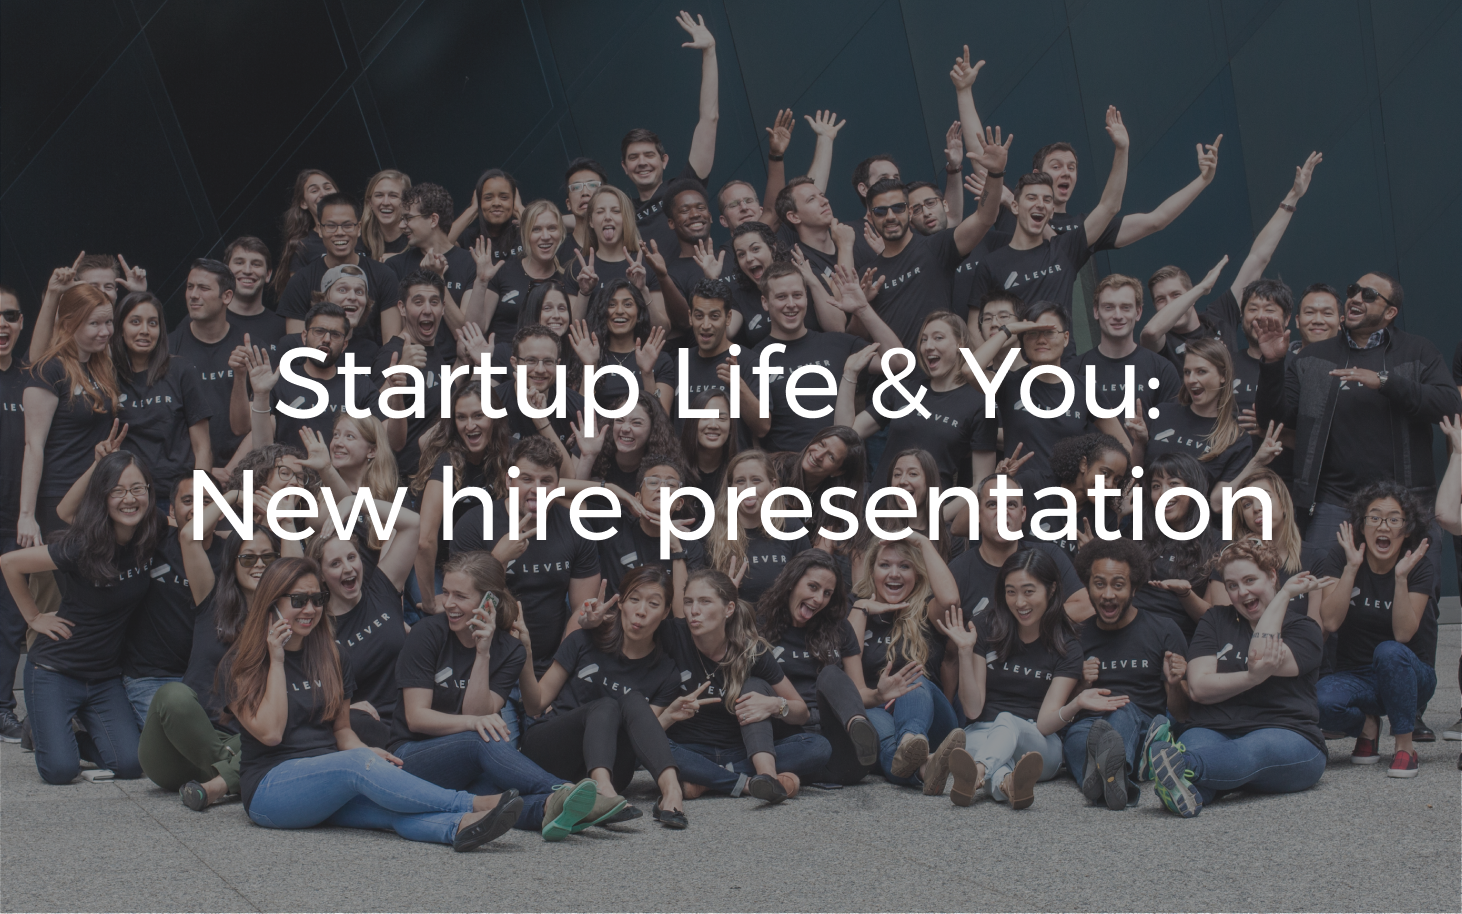 There are SO many things I wish I knew when I first started in tech. This presentation only scratches the surface, but I believe in setting realistic expectations – we need more of it in startups.